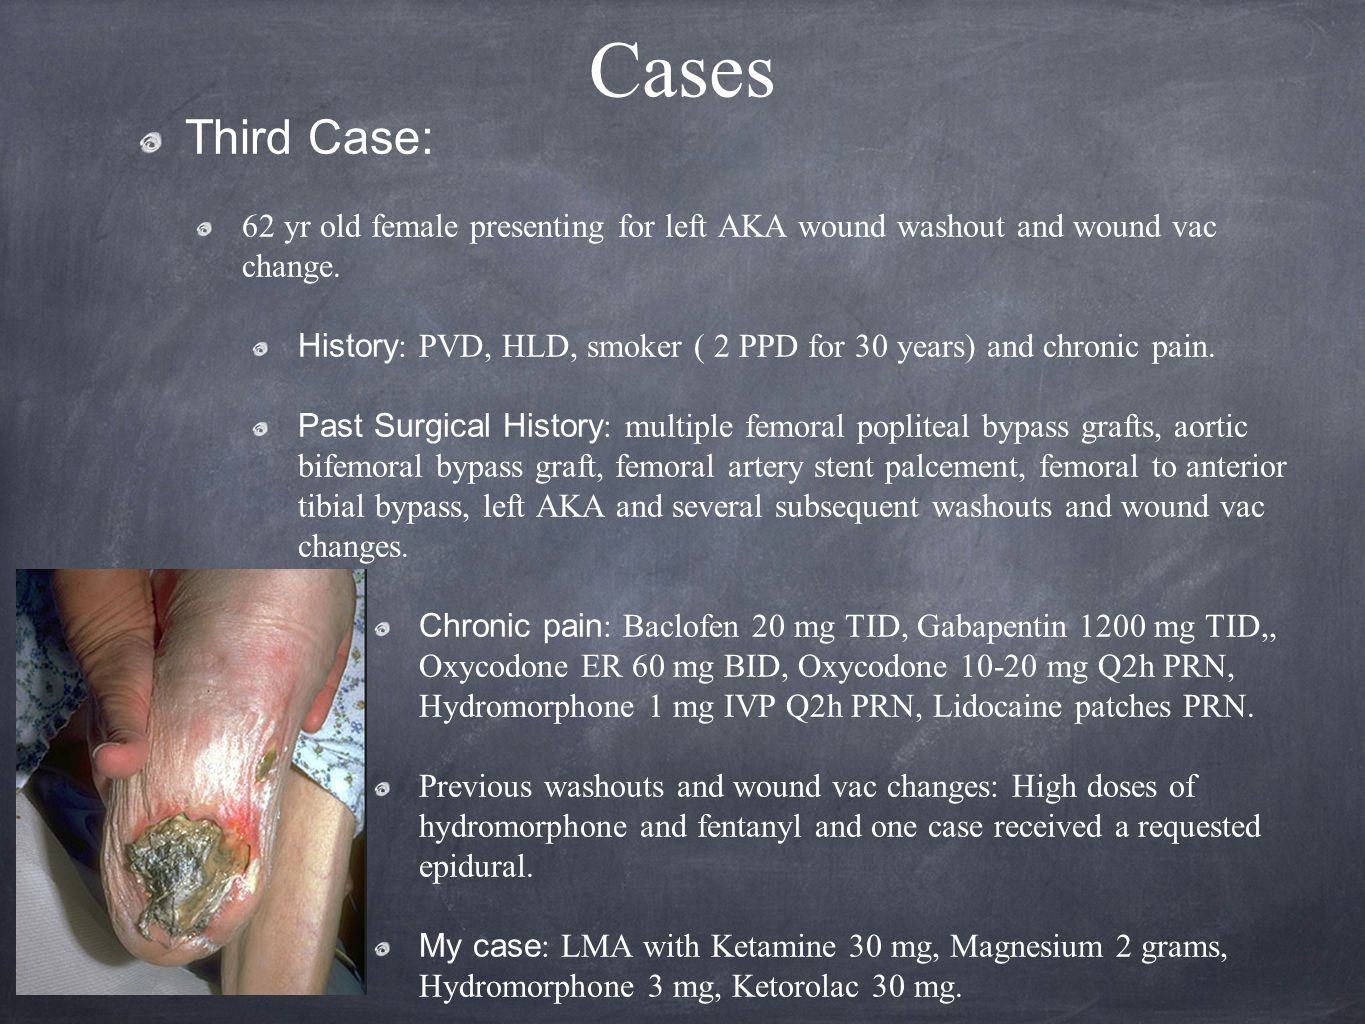 Cases Third Case: 62 yr old female presenting for left AKA wound washout and wound vac change.